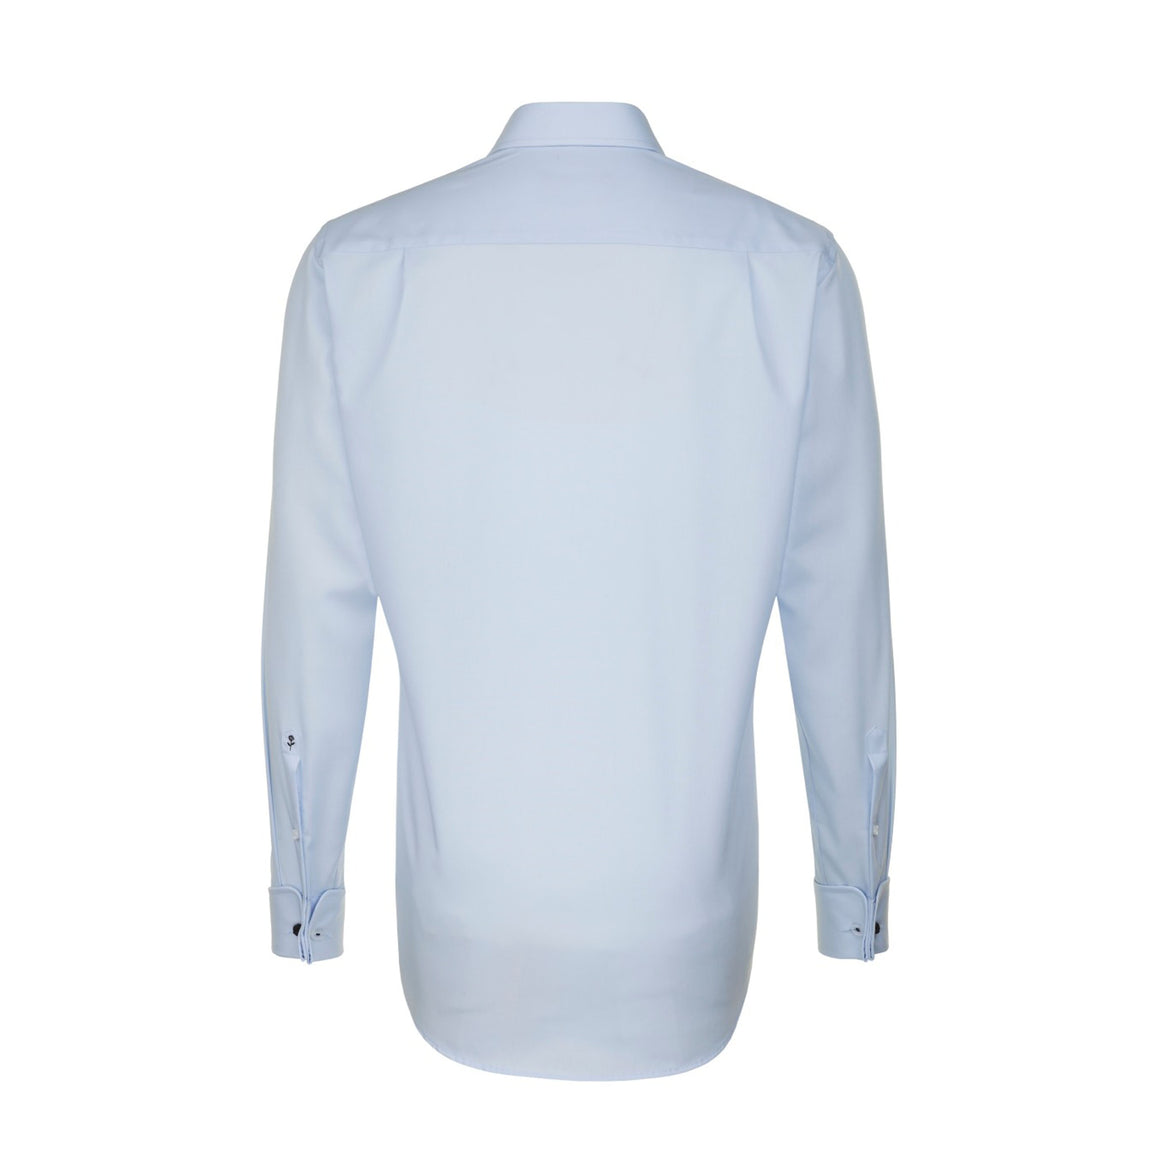 L/S Regular Fit D/C Shirt for Men in Sky